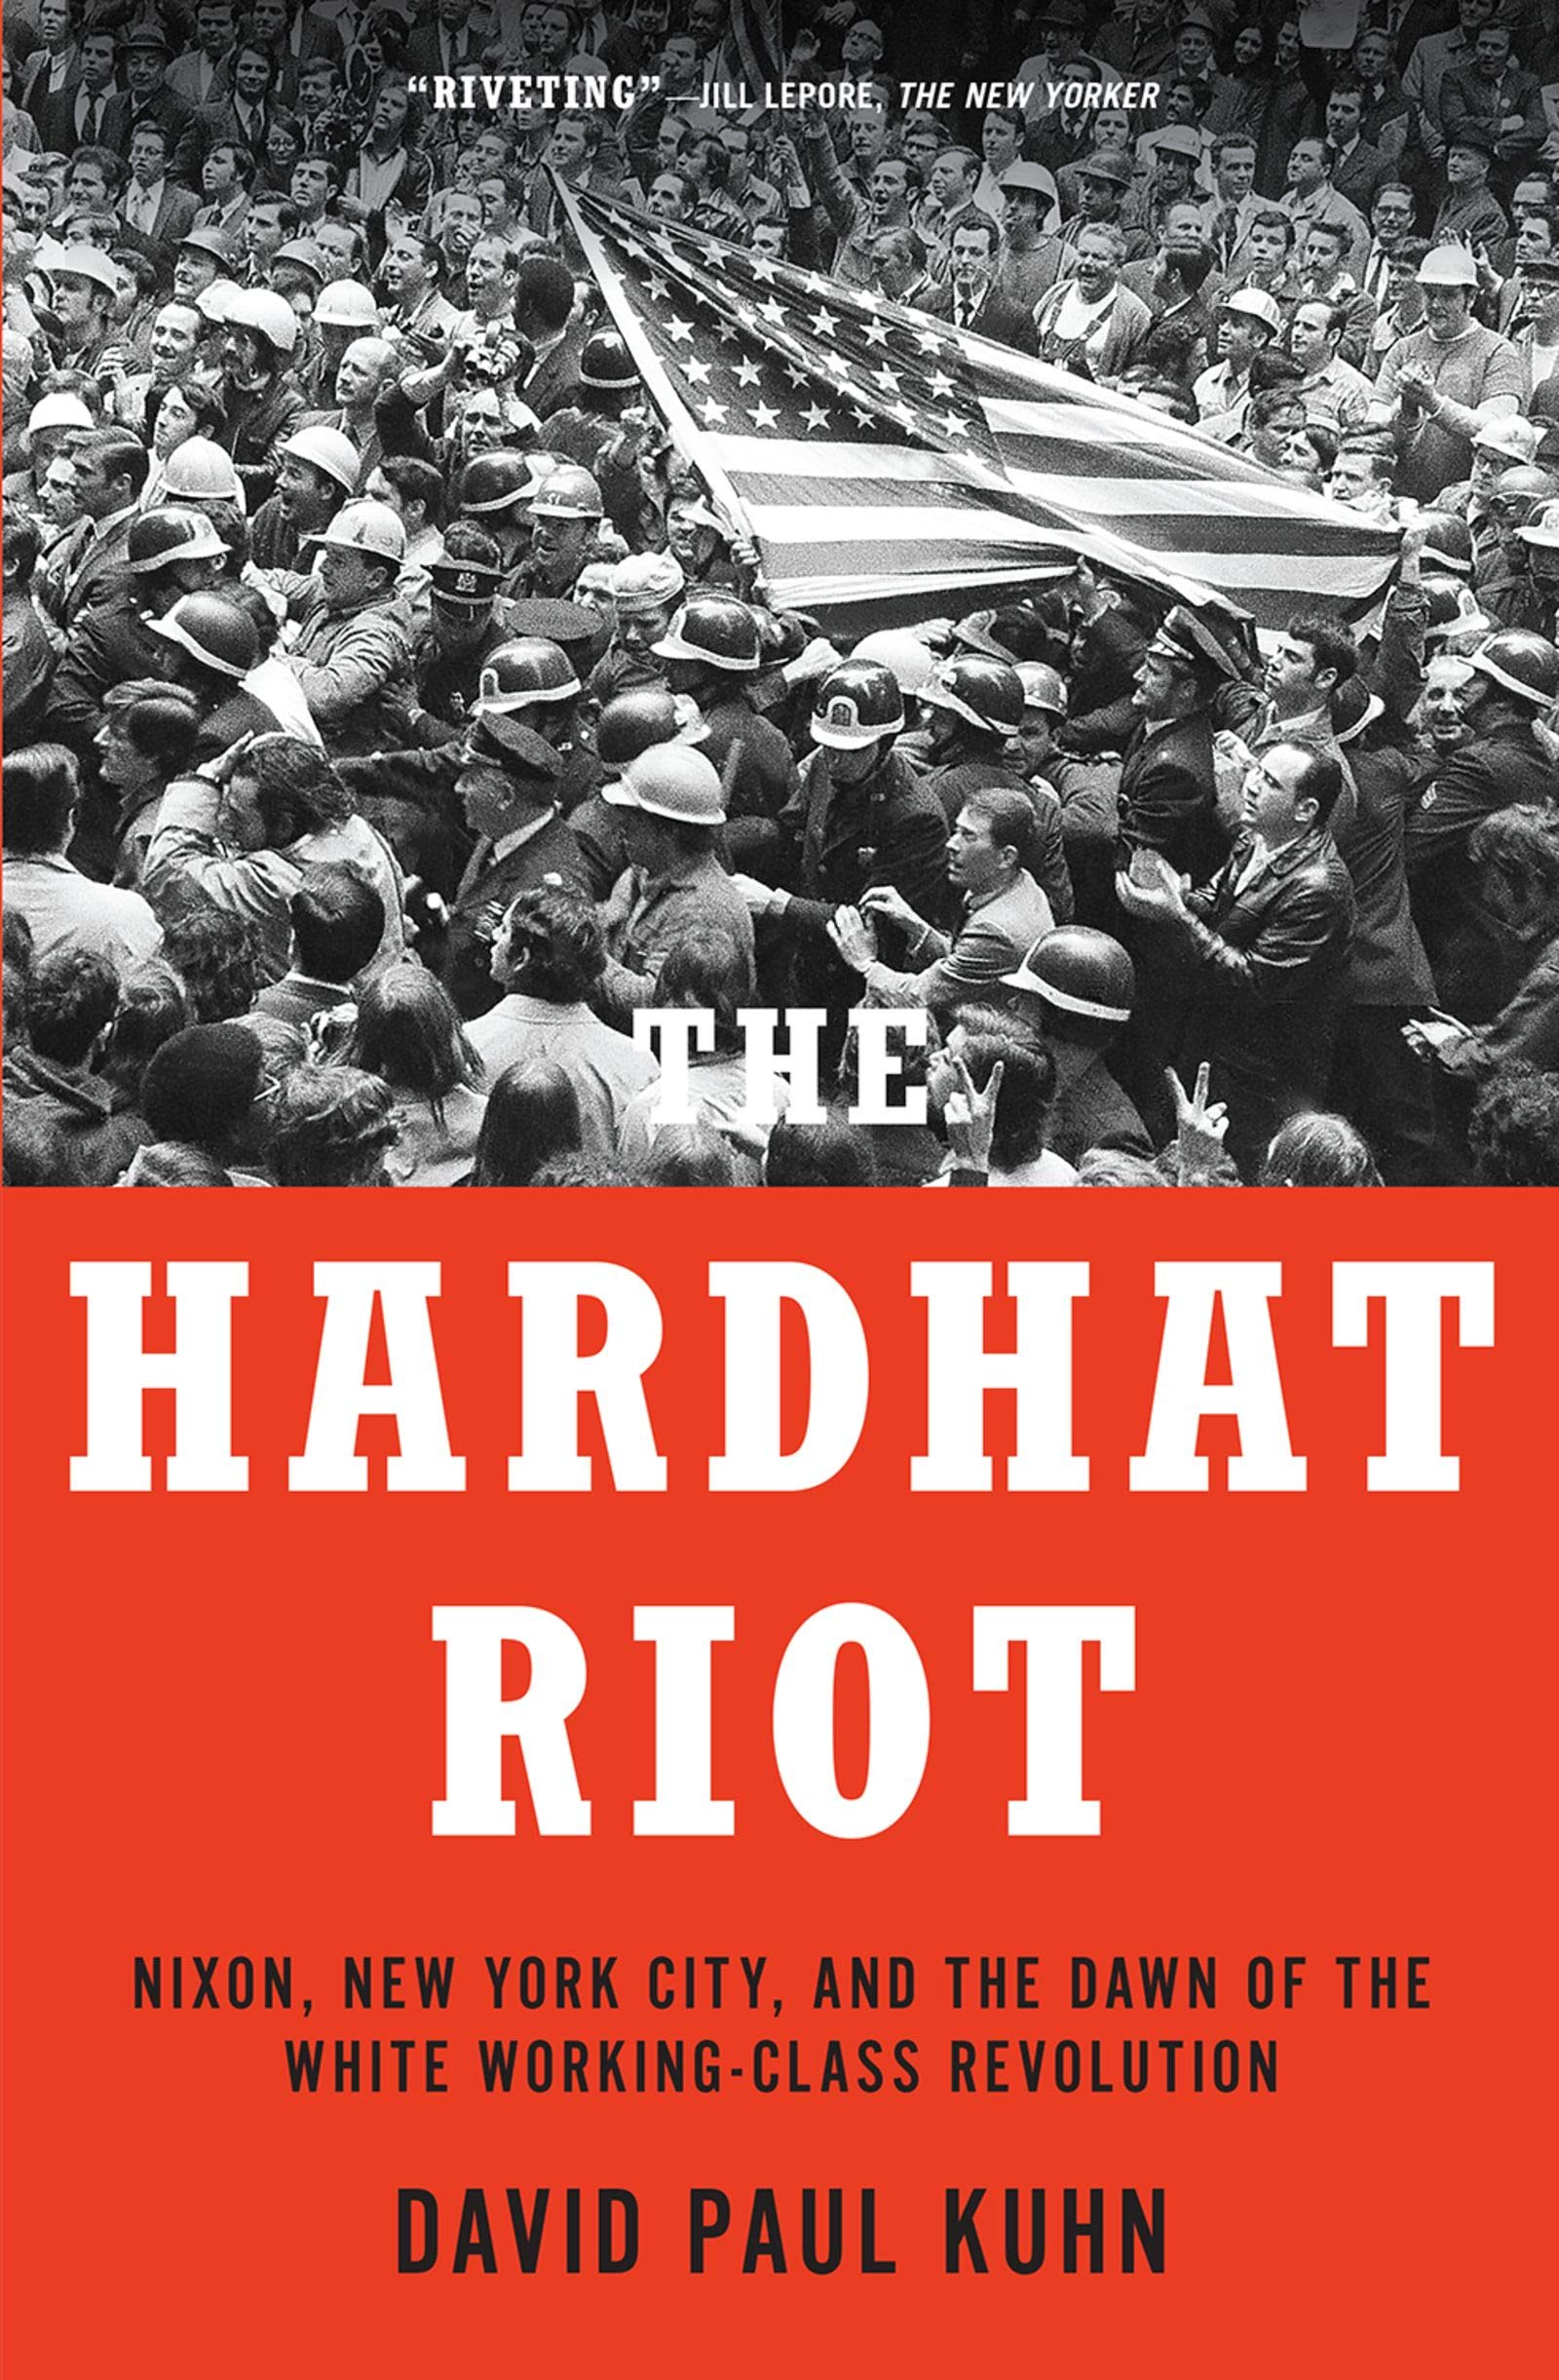 Image OfThe Hardhat Riot: Nixon, New York City, And The Dawn Of The White Working-Class Revolution (English Edition)